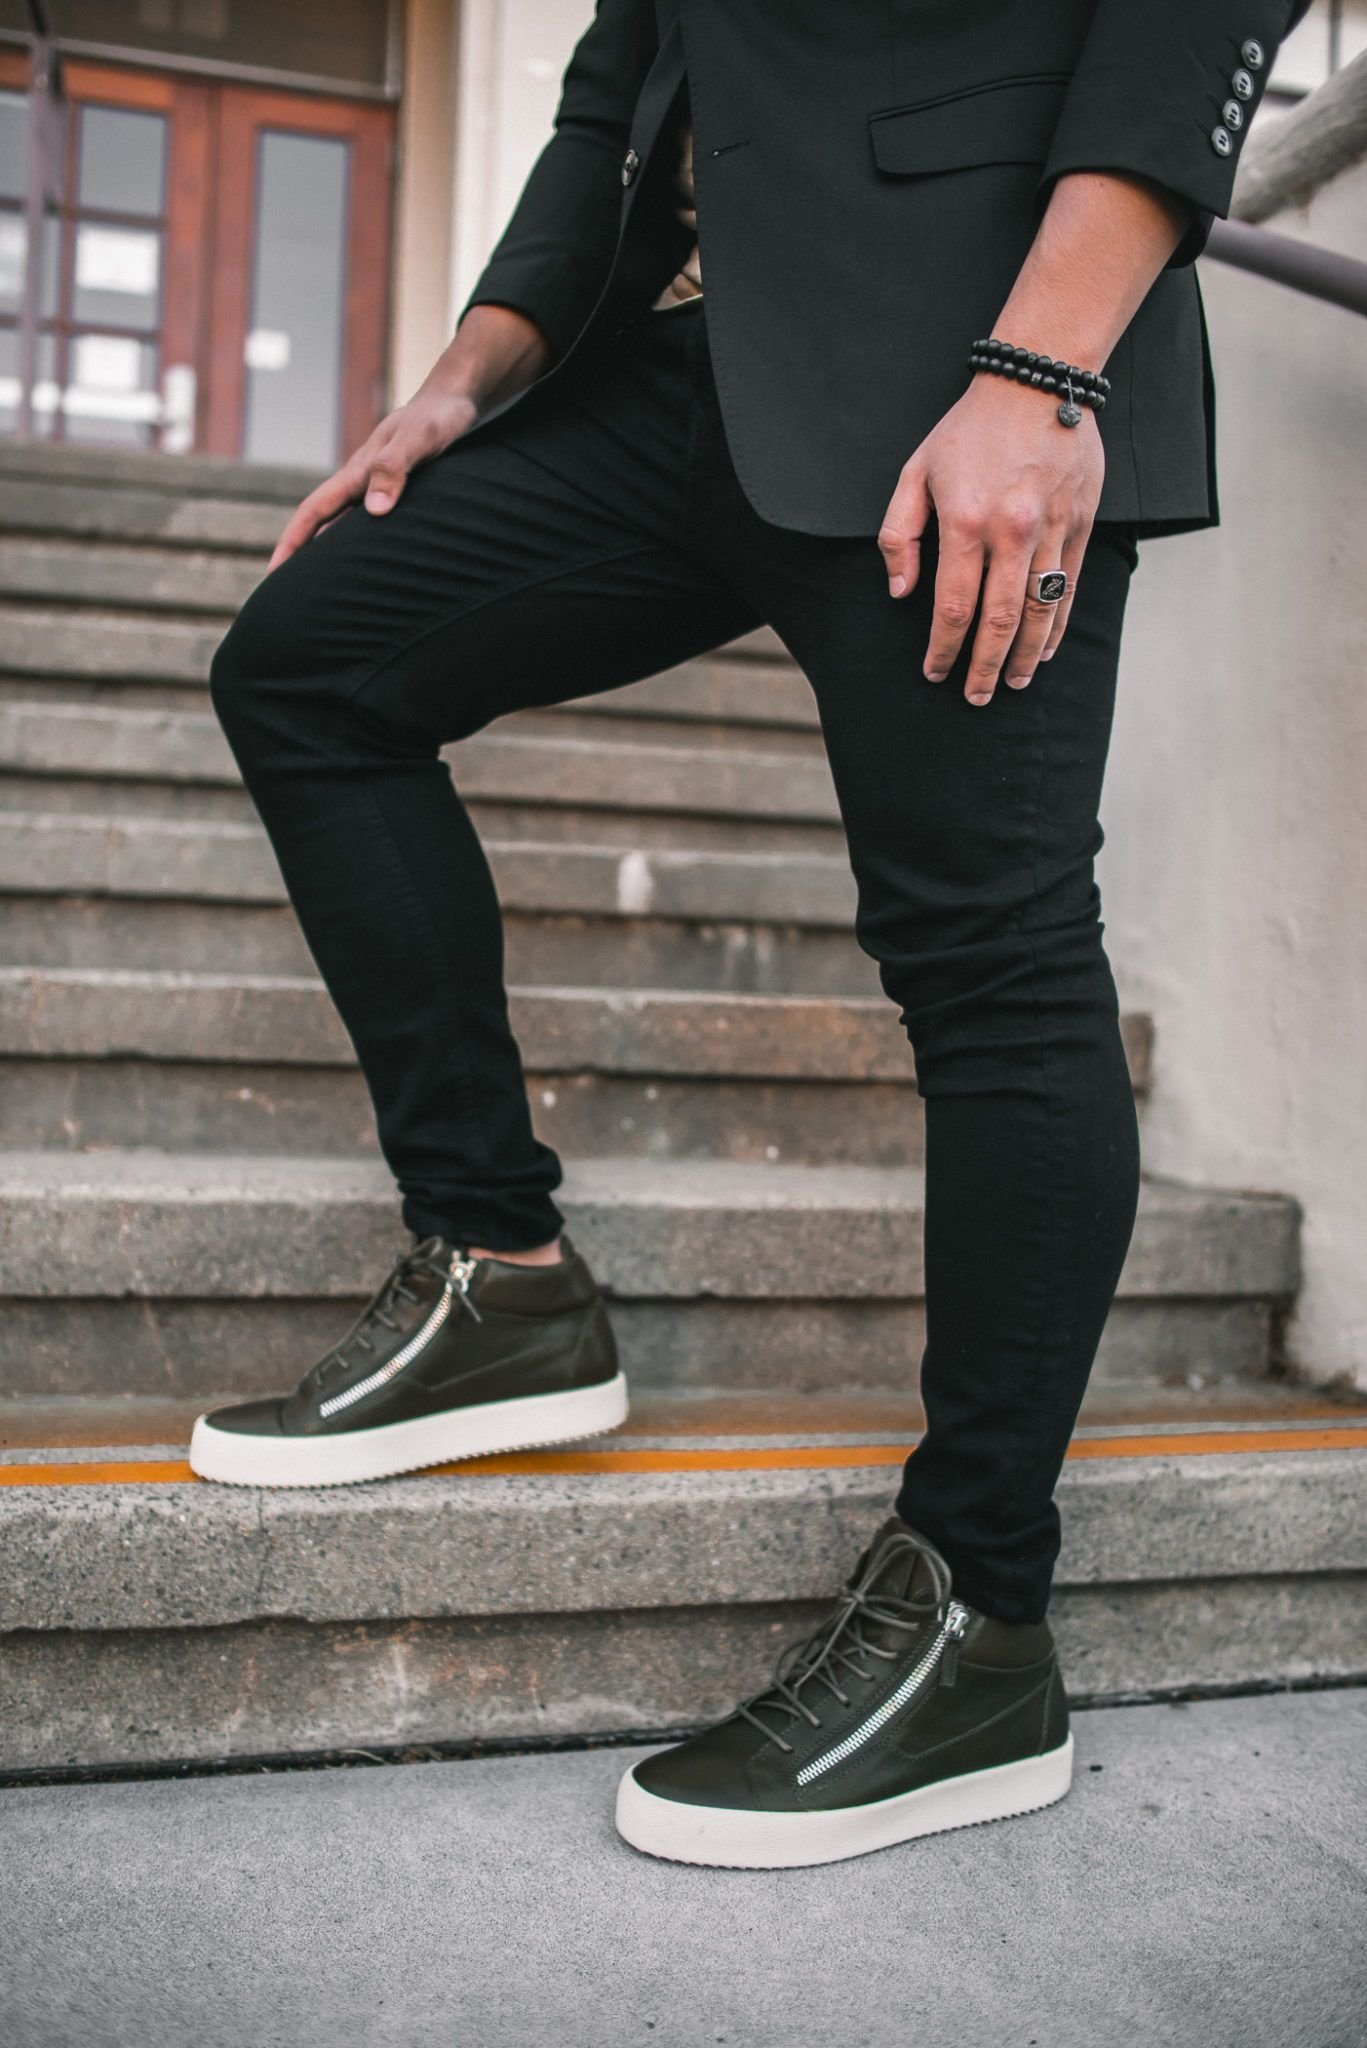 Pin on Men's Fashion and style